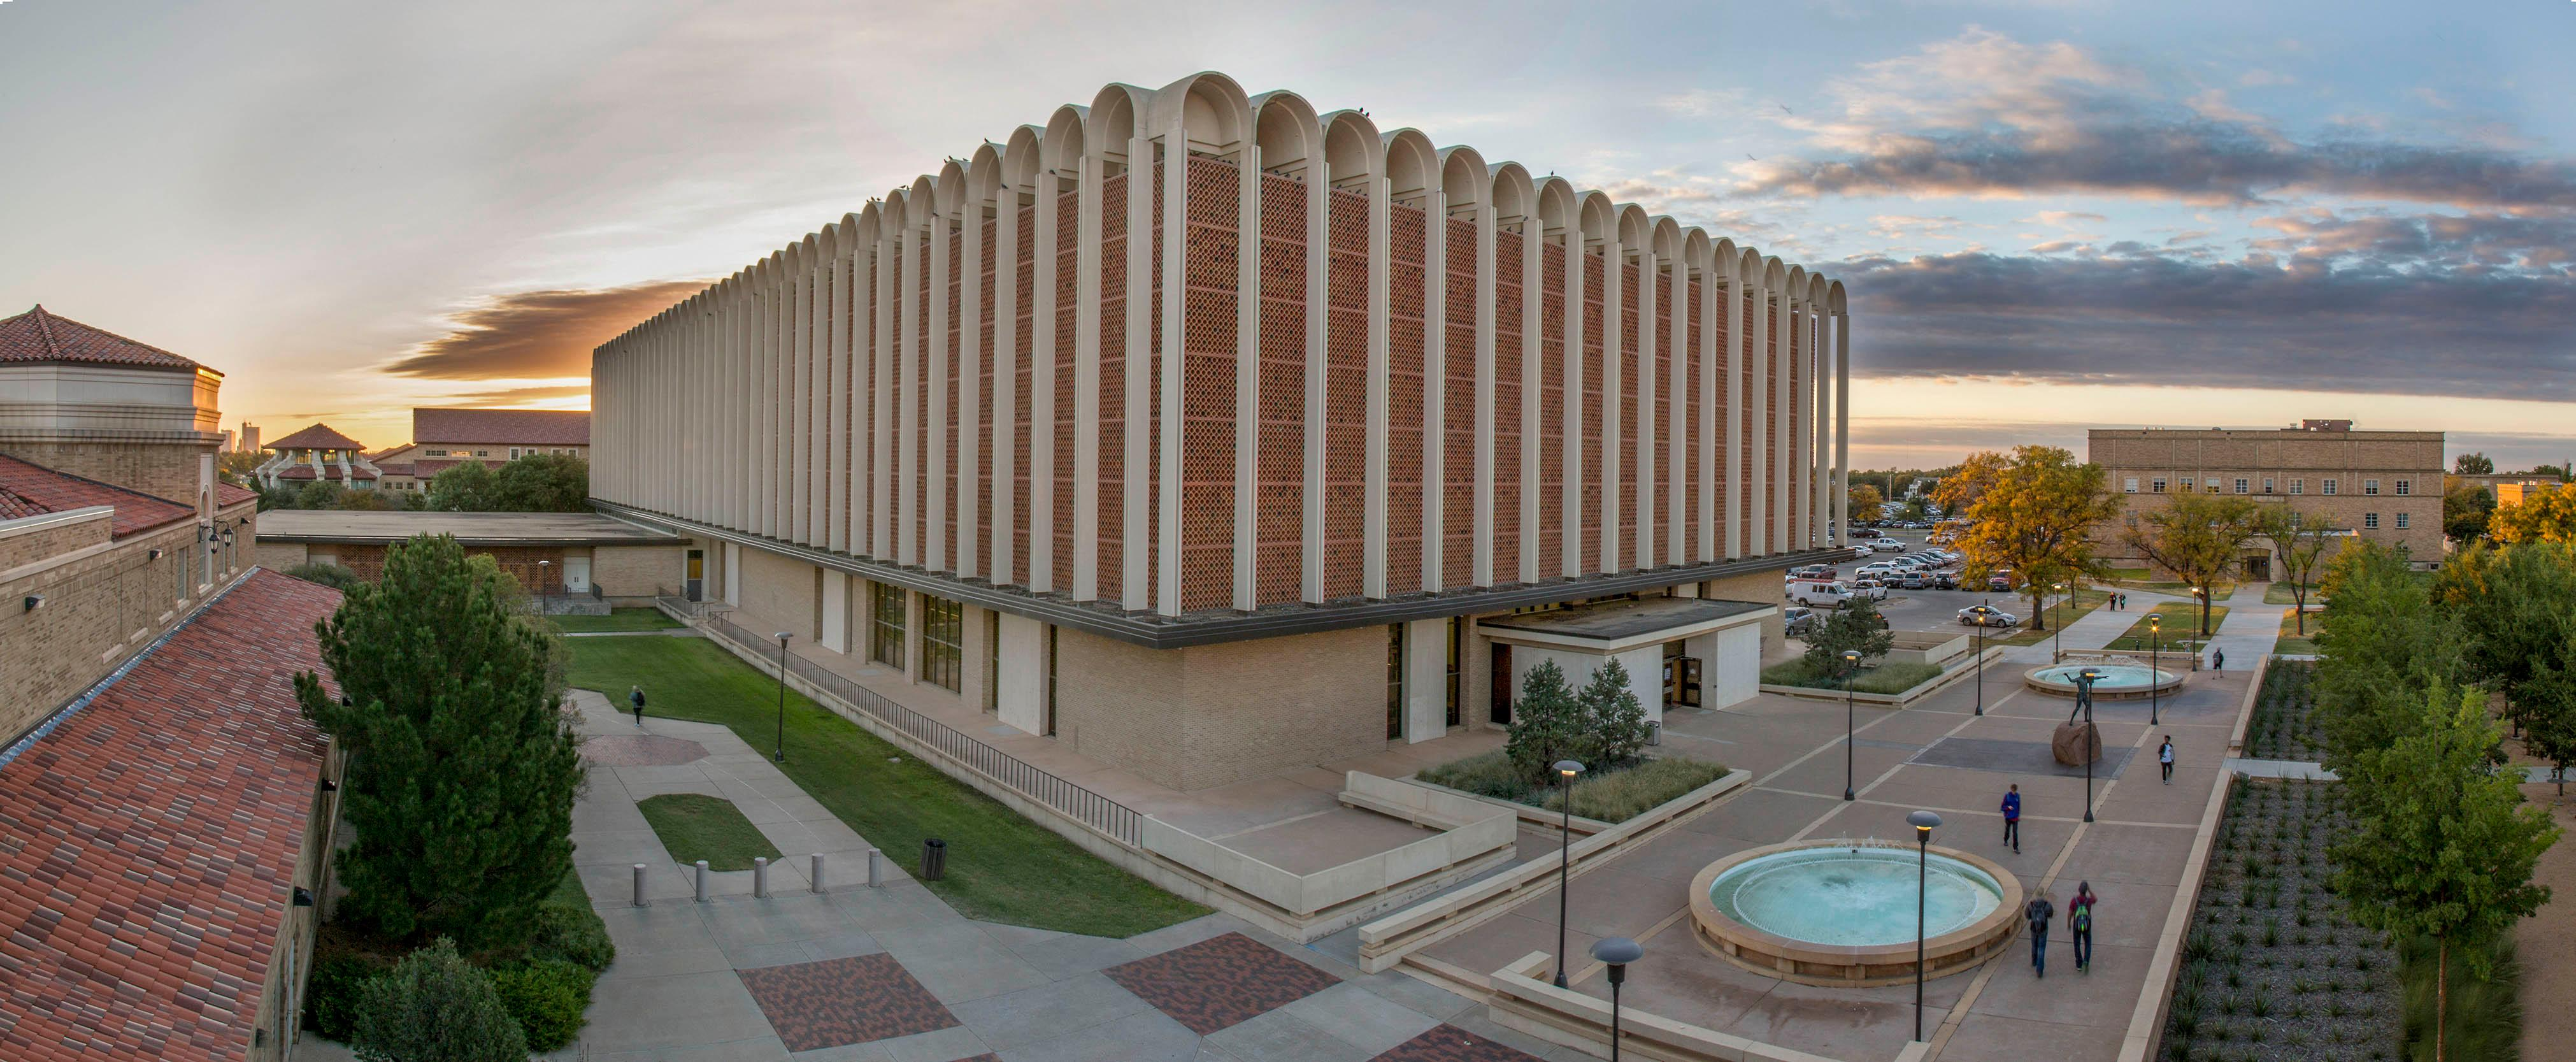 picture of Texas tech university libraries building